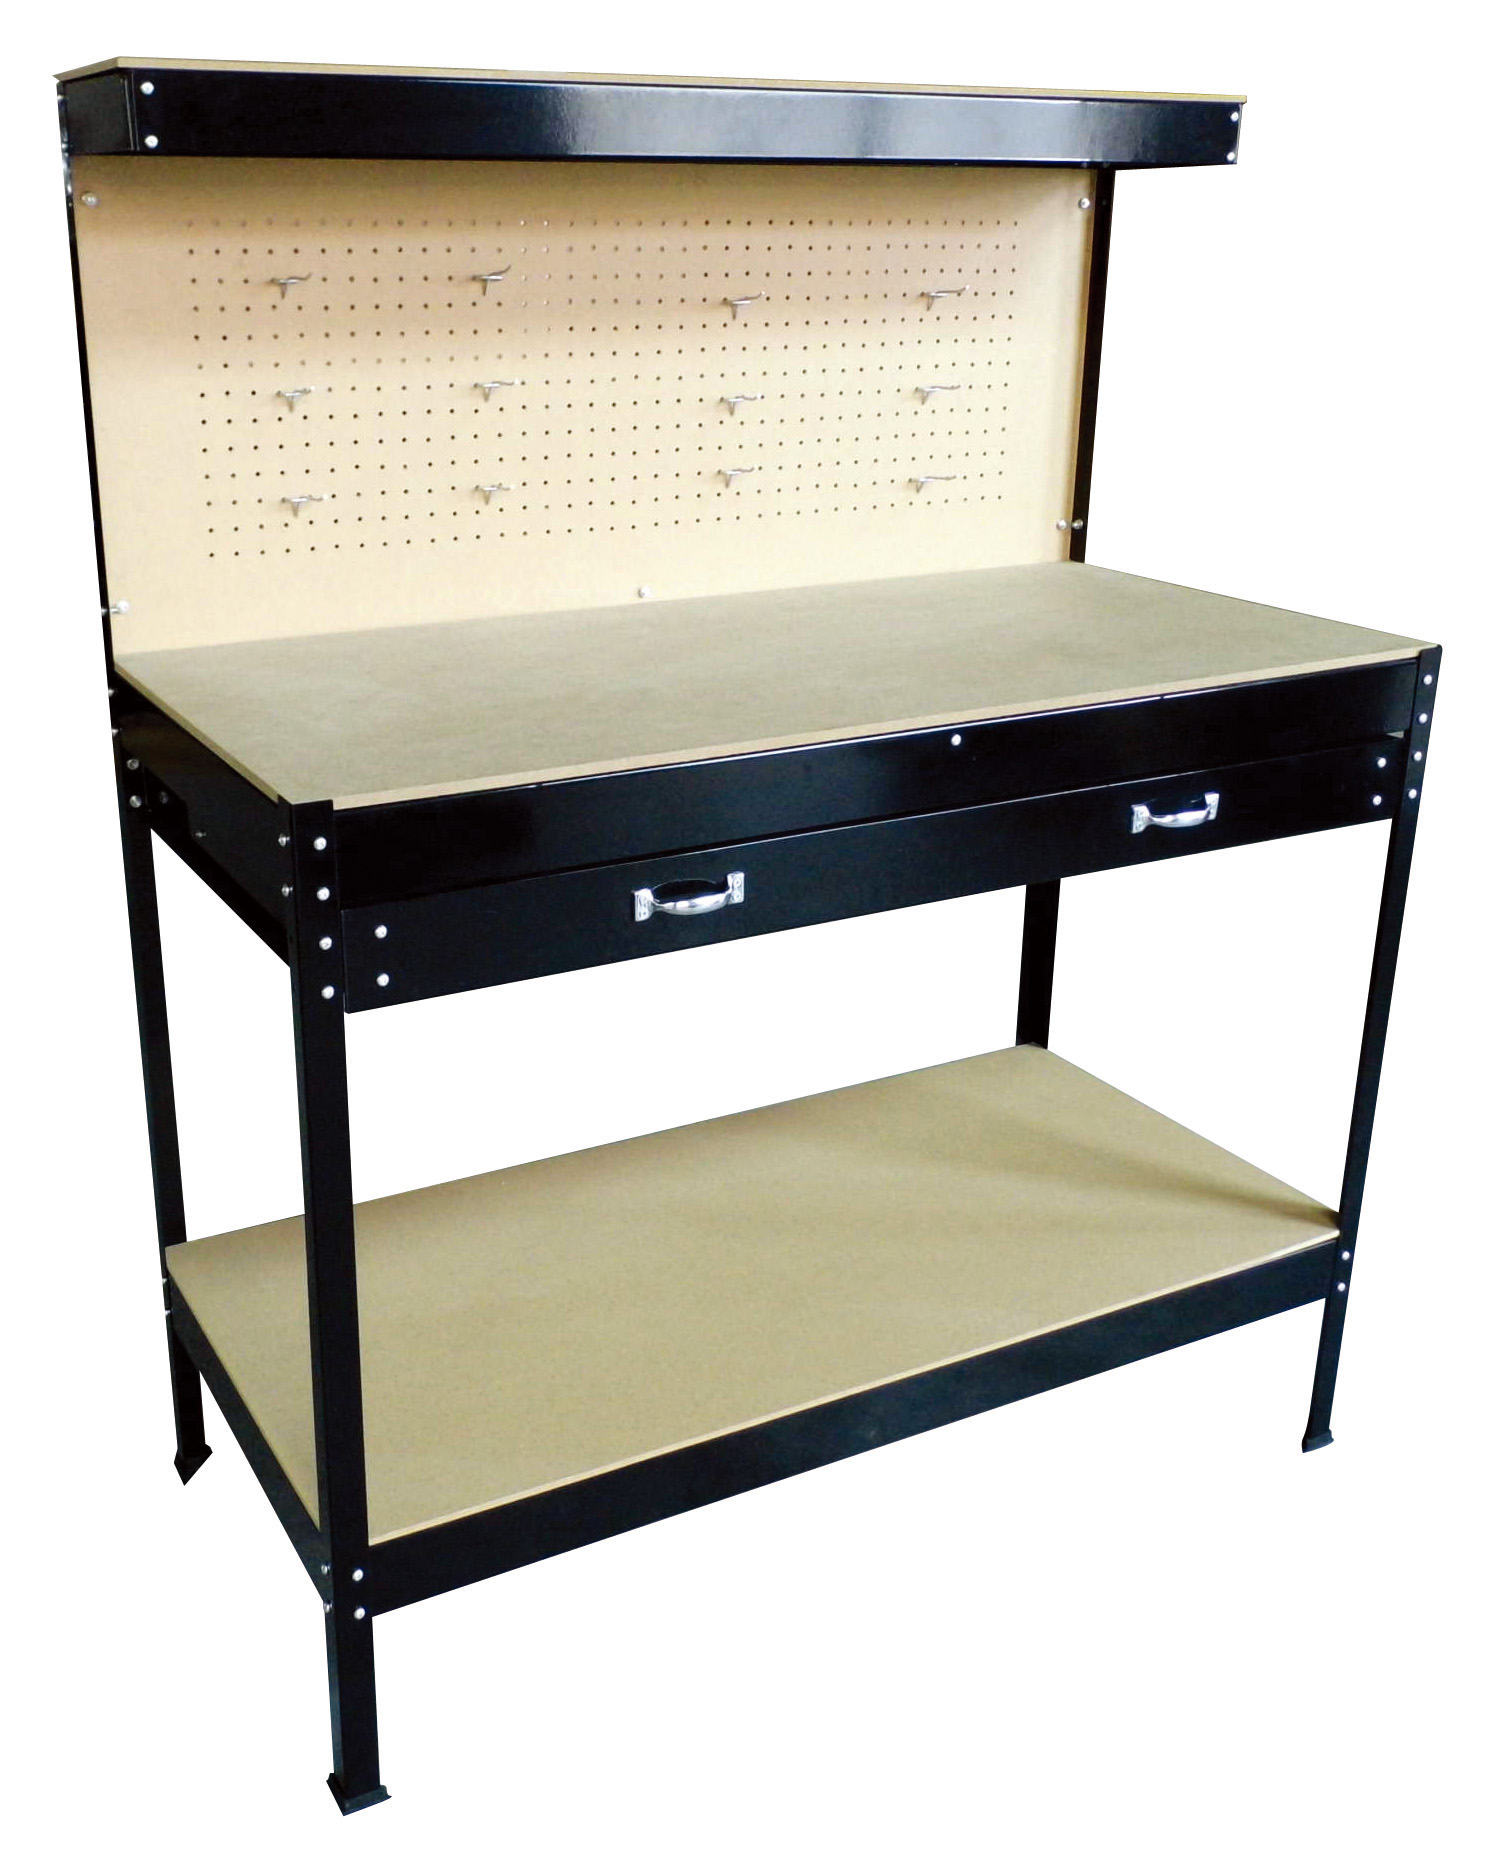 New Black Steel Tools Box Workbench Garage Workshop Table With Pegboard Drawers Ebay